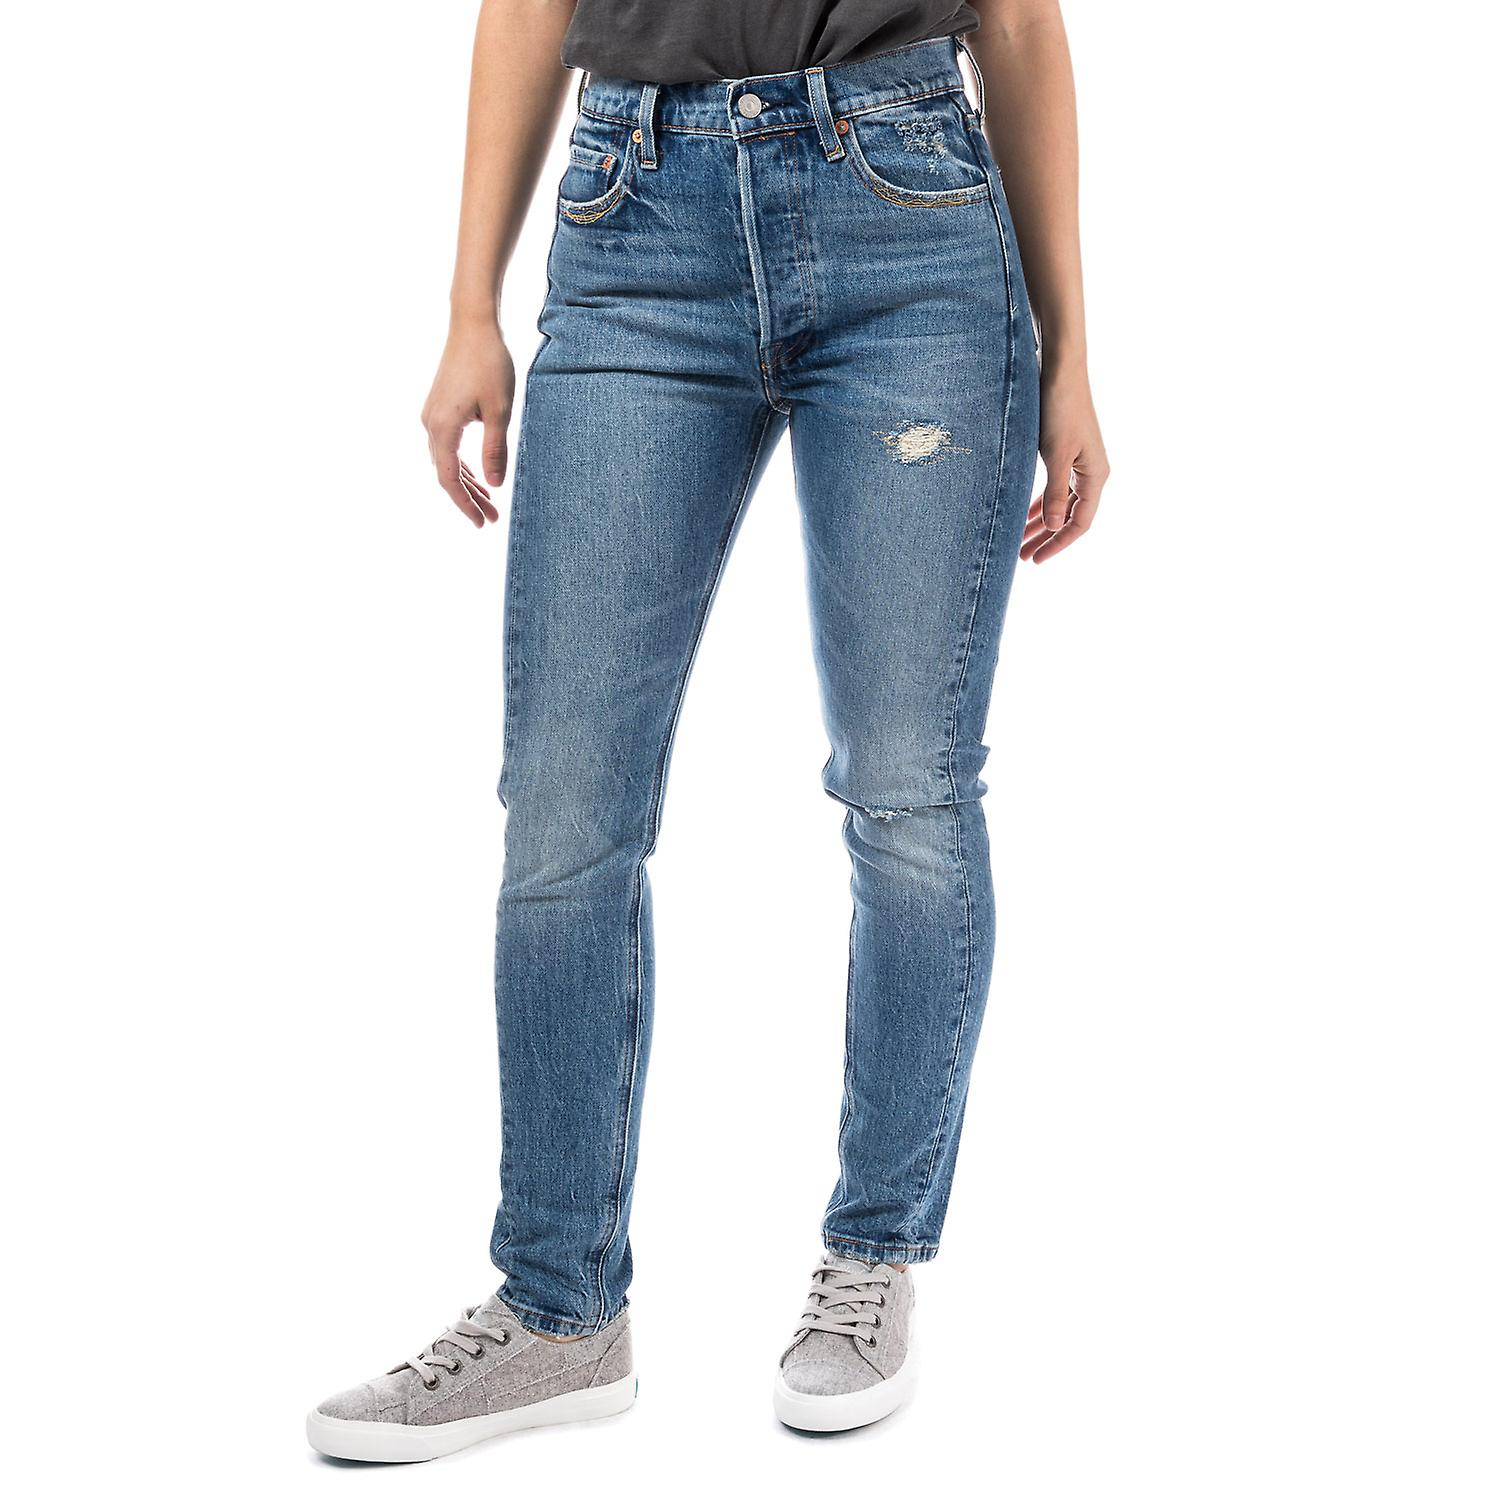 501 Altered Skinny Jeans - forward seam jeans